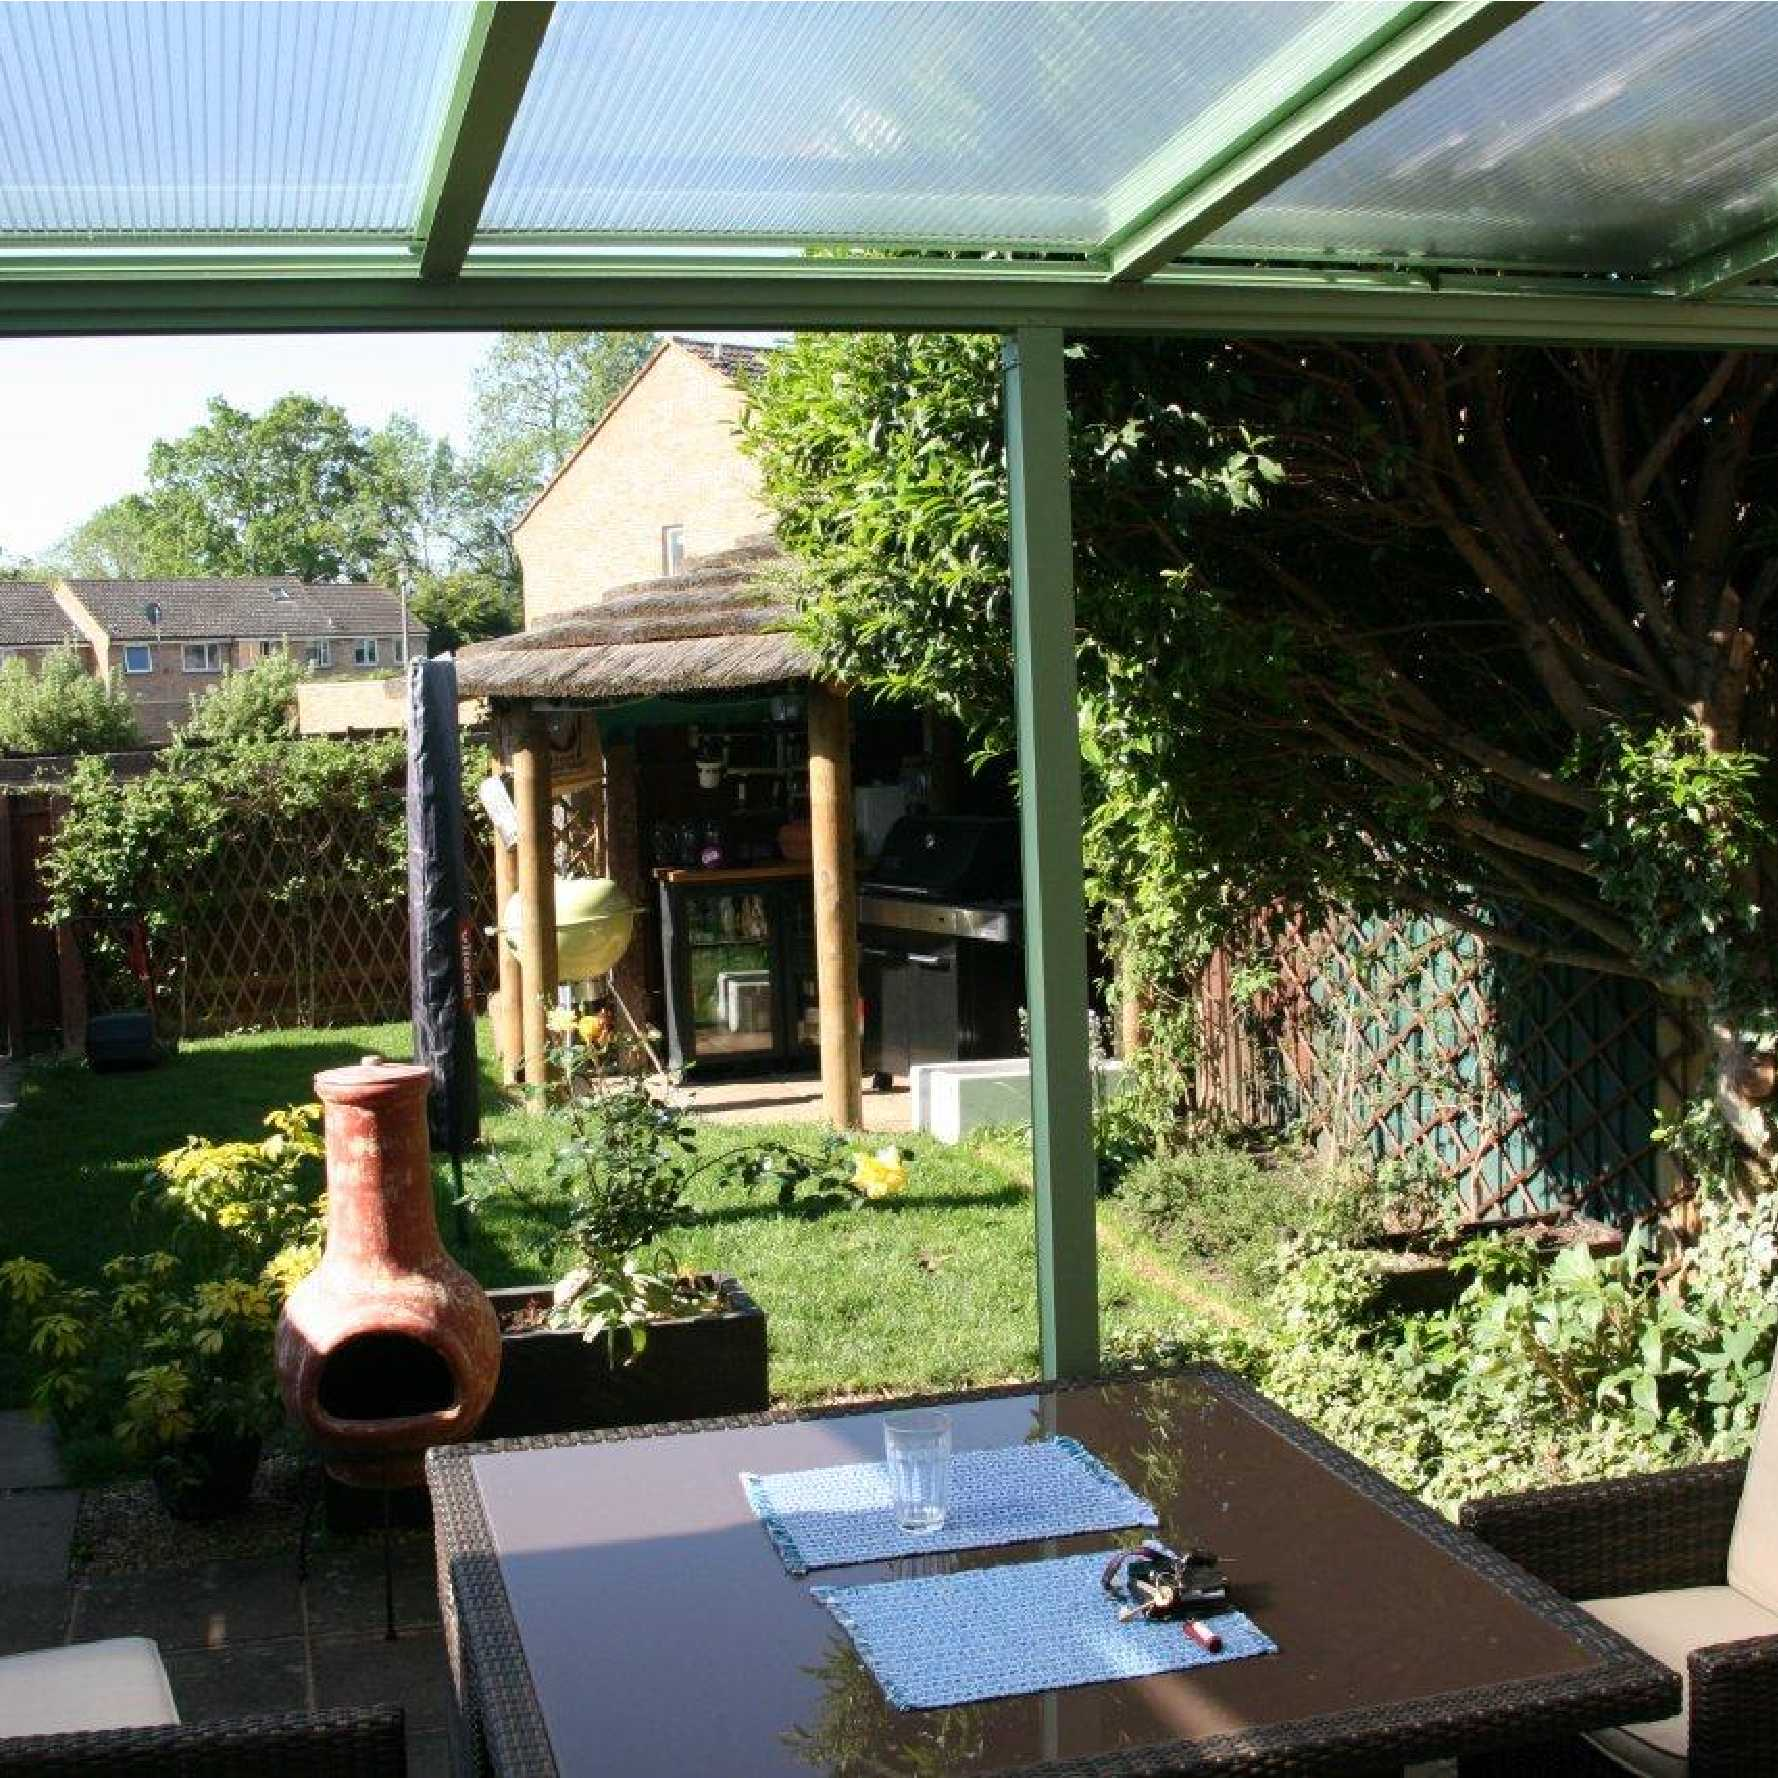 Affordable Omega Smart White Lean-To Canopy with 16mm Polycarbonate Glazing - 7.0m (W) x 4.5m (P), (4) Supporting Posts